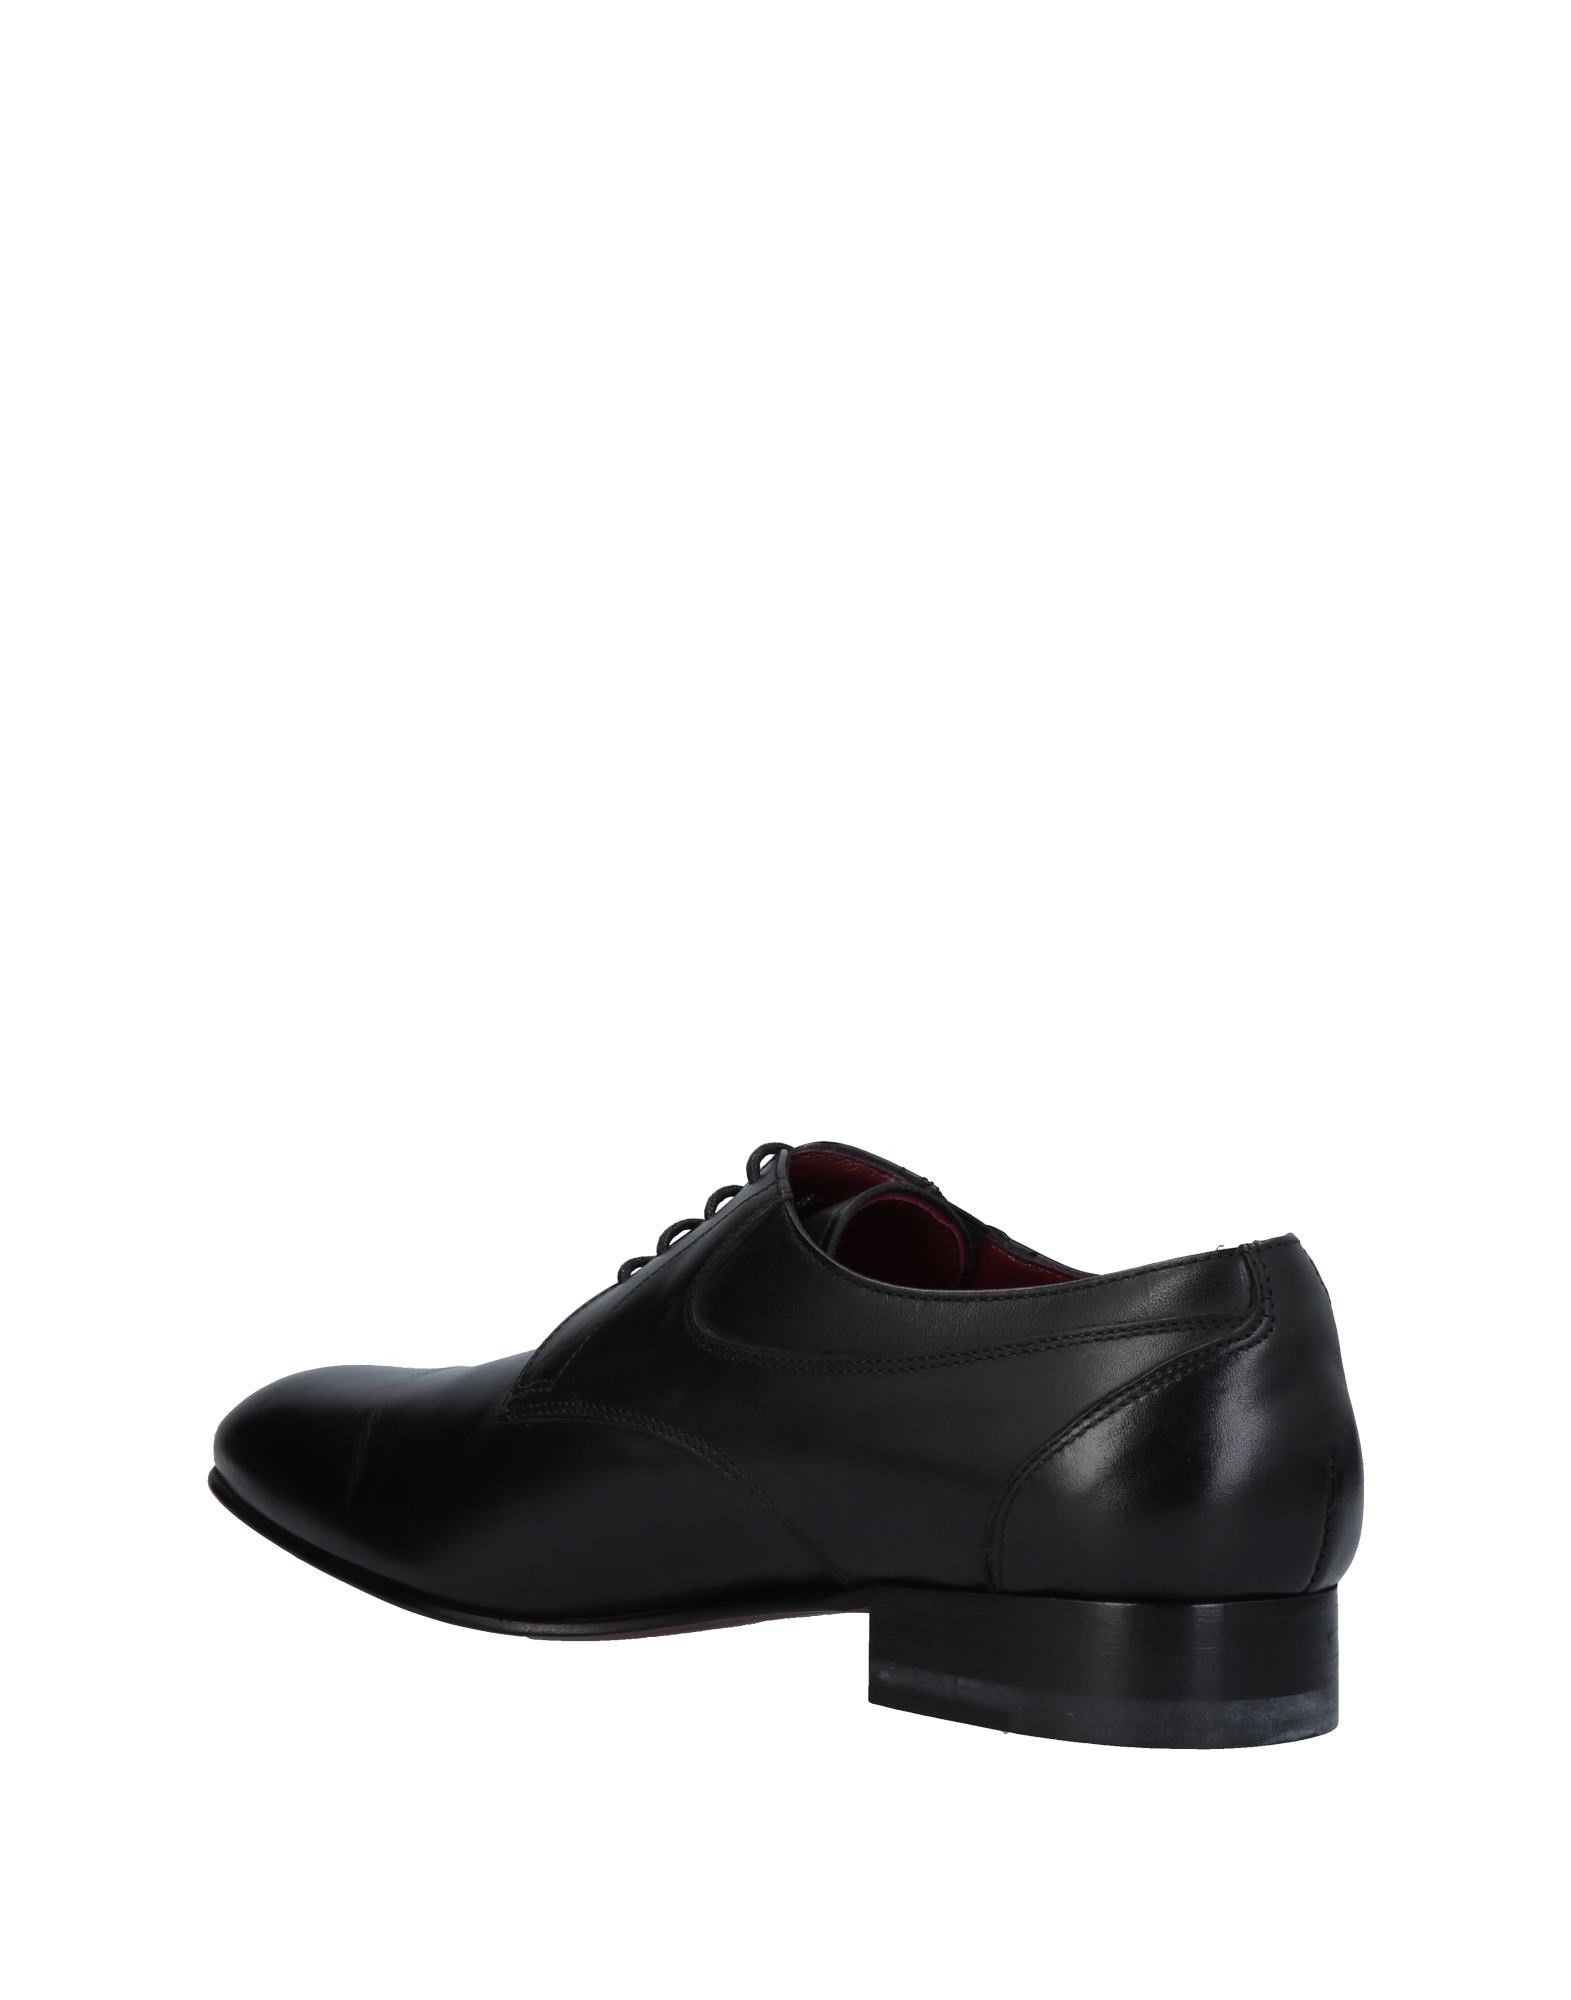 ALEXANDER TREND Chaussures à lacets homme. fSs4Bfdk